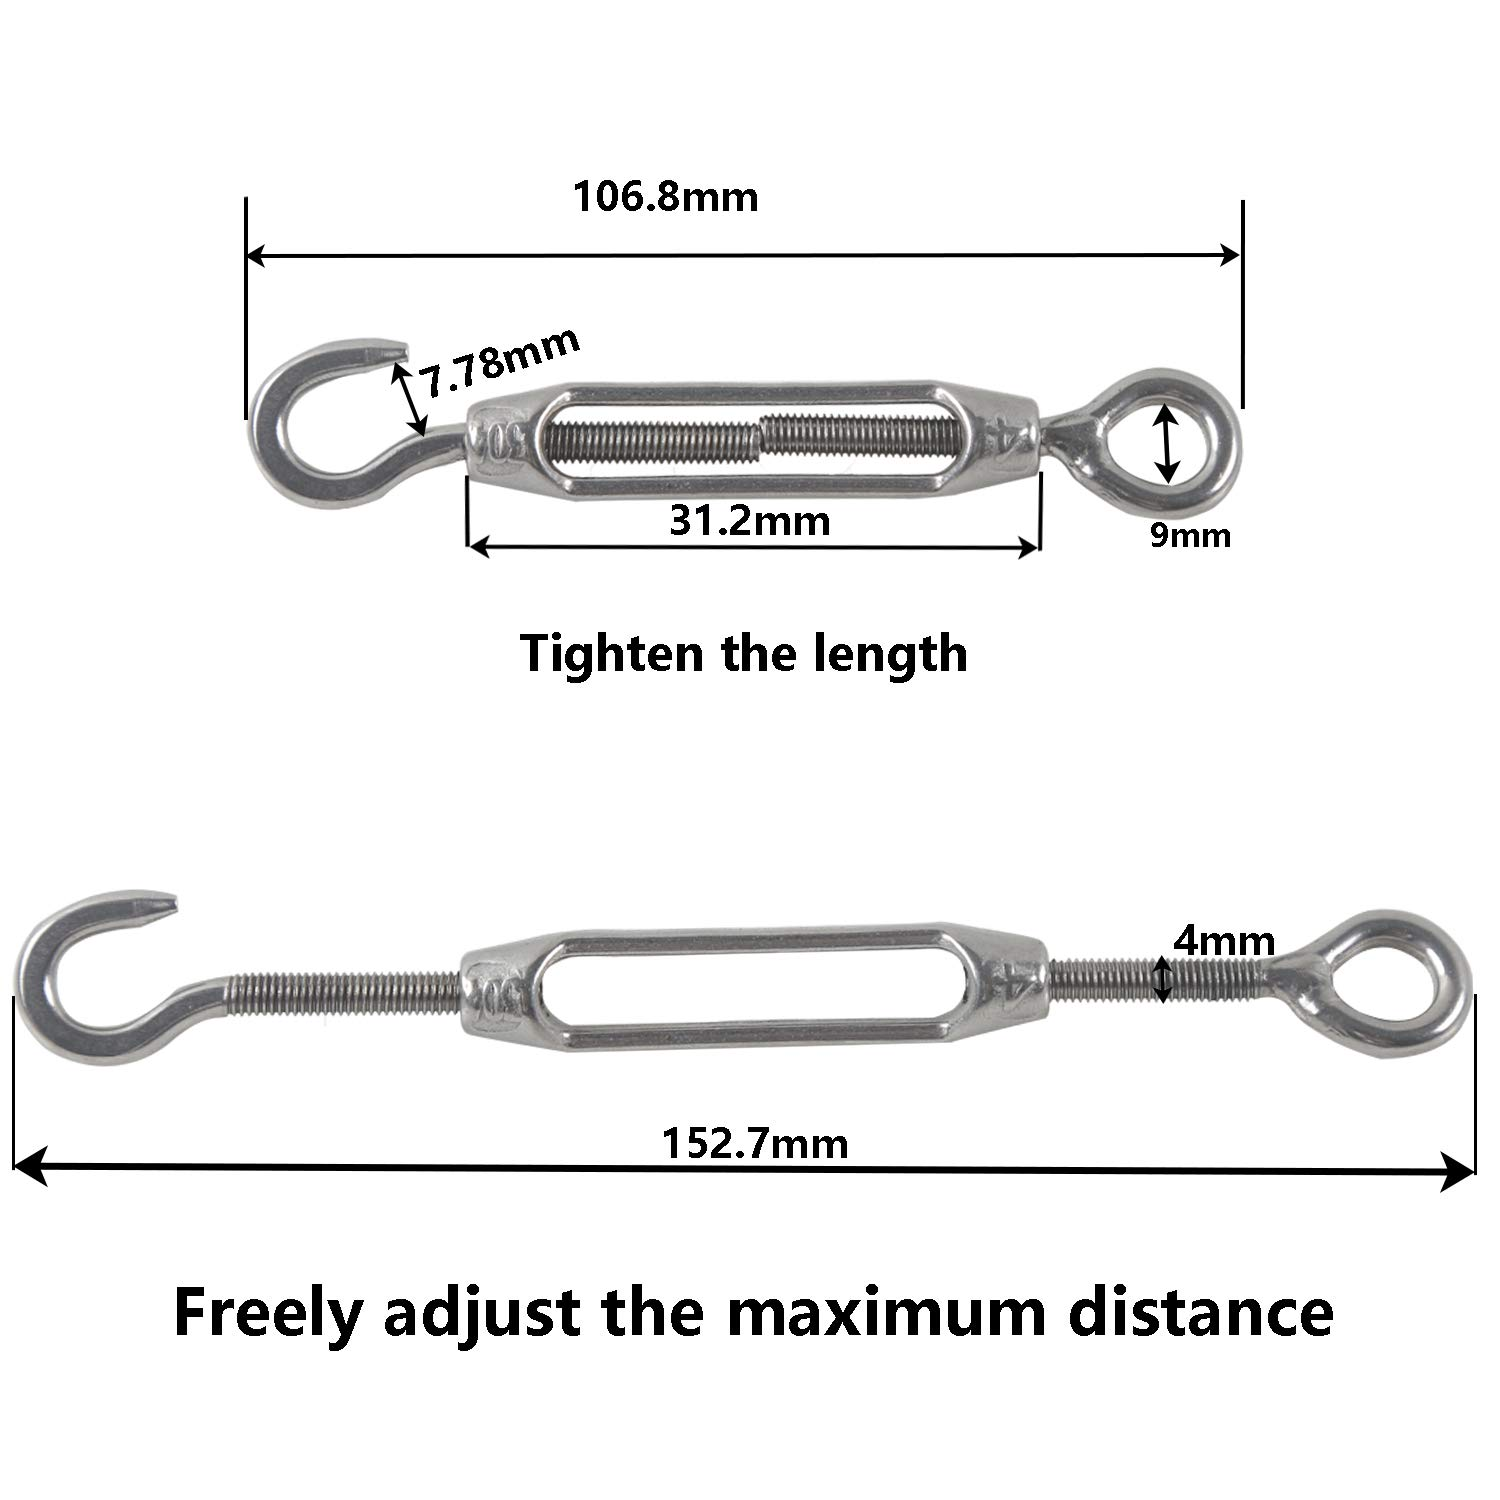 M4 Turnbuckle Wire Tensioner 304 Stainless Steel Adjustable Turnbuckle Hook and Eye Rope Cable Tension for Rope Tightener Garden Wire ClotheslineTensioner Heavy Duty Sun Shade Sail Fixing Kit 6pcs